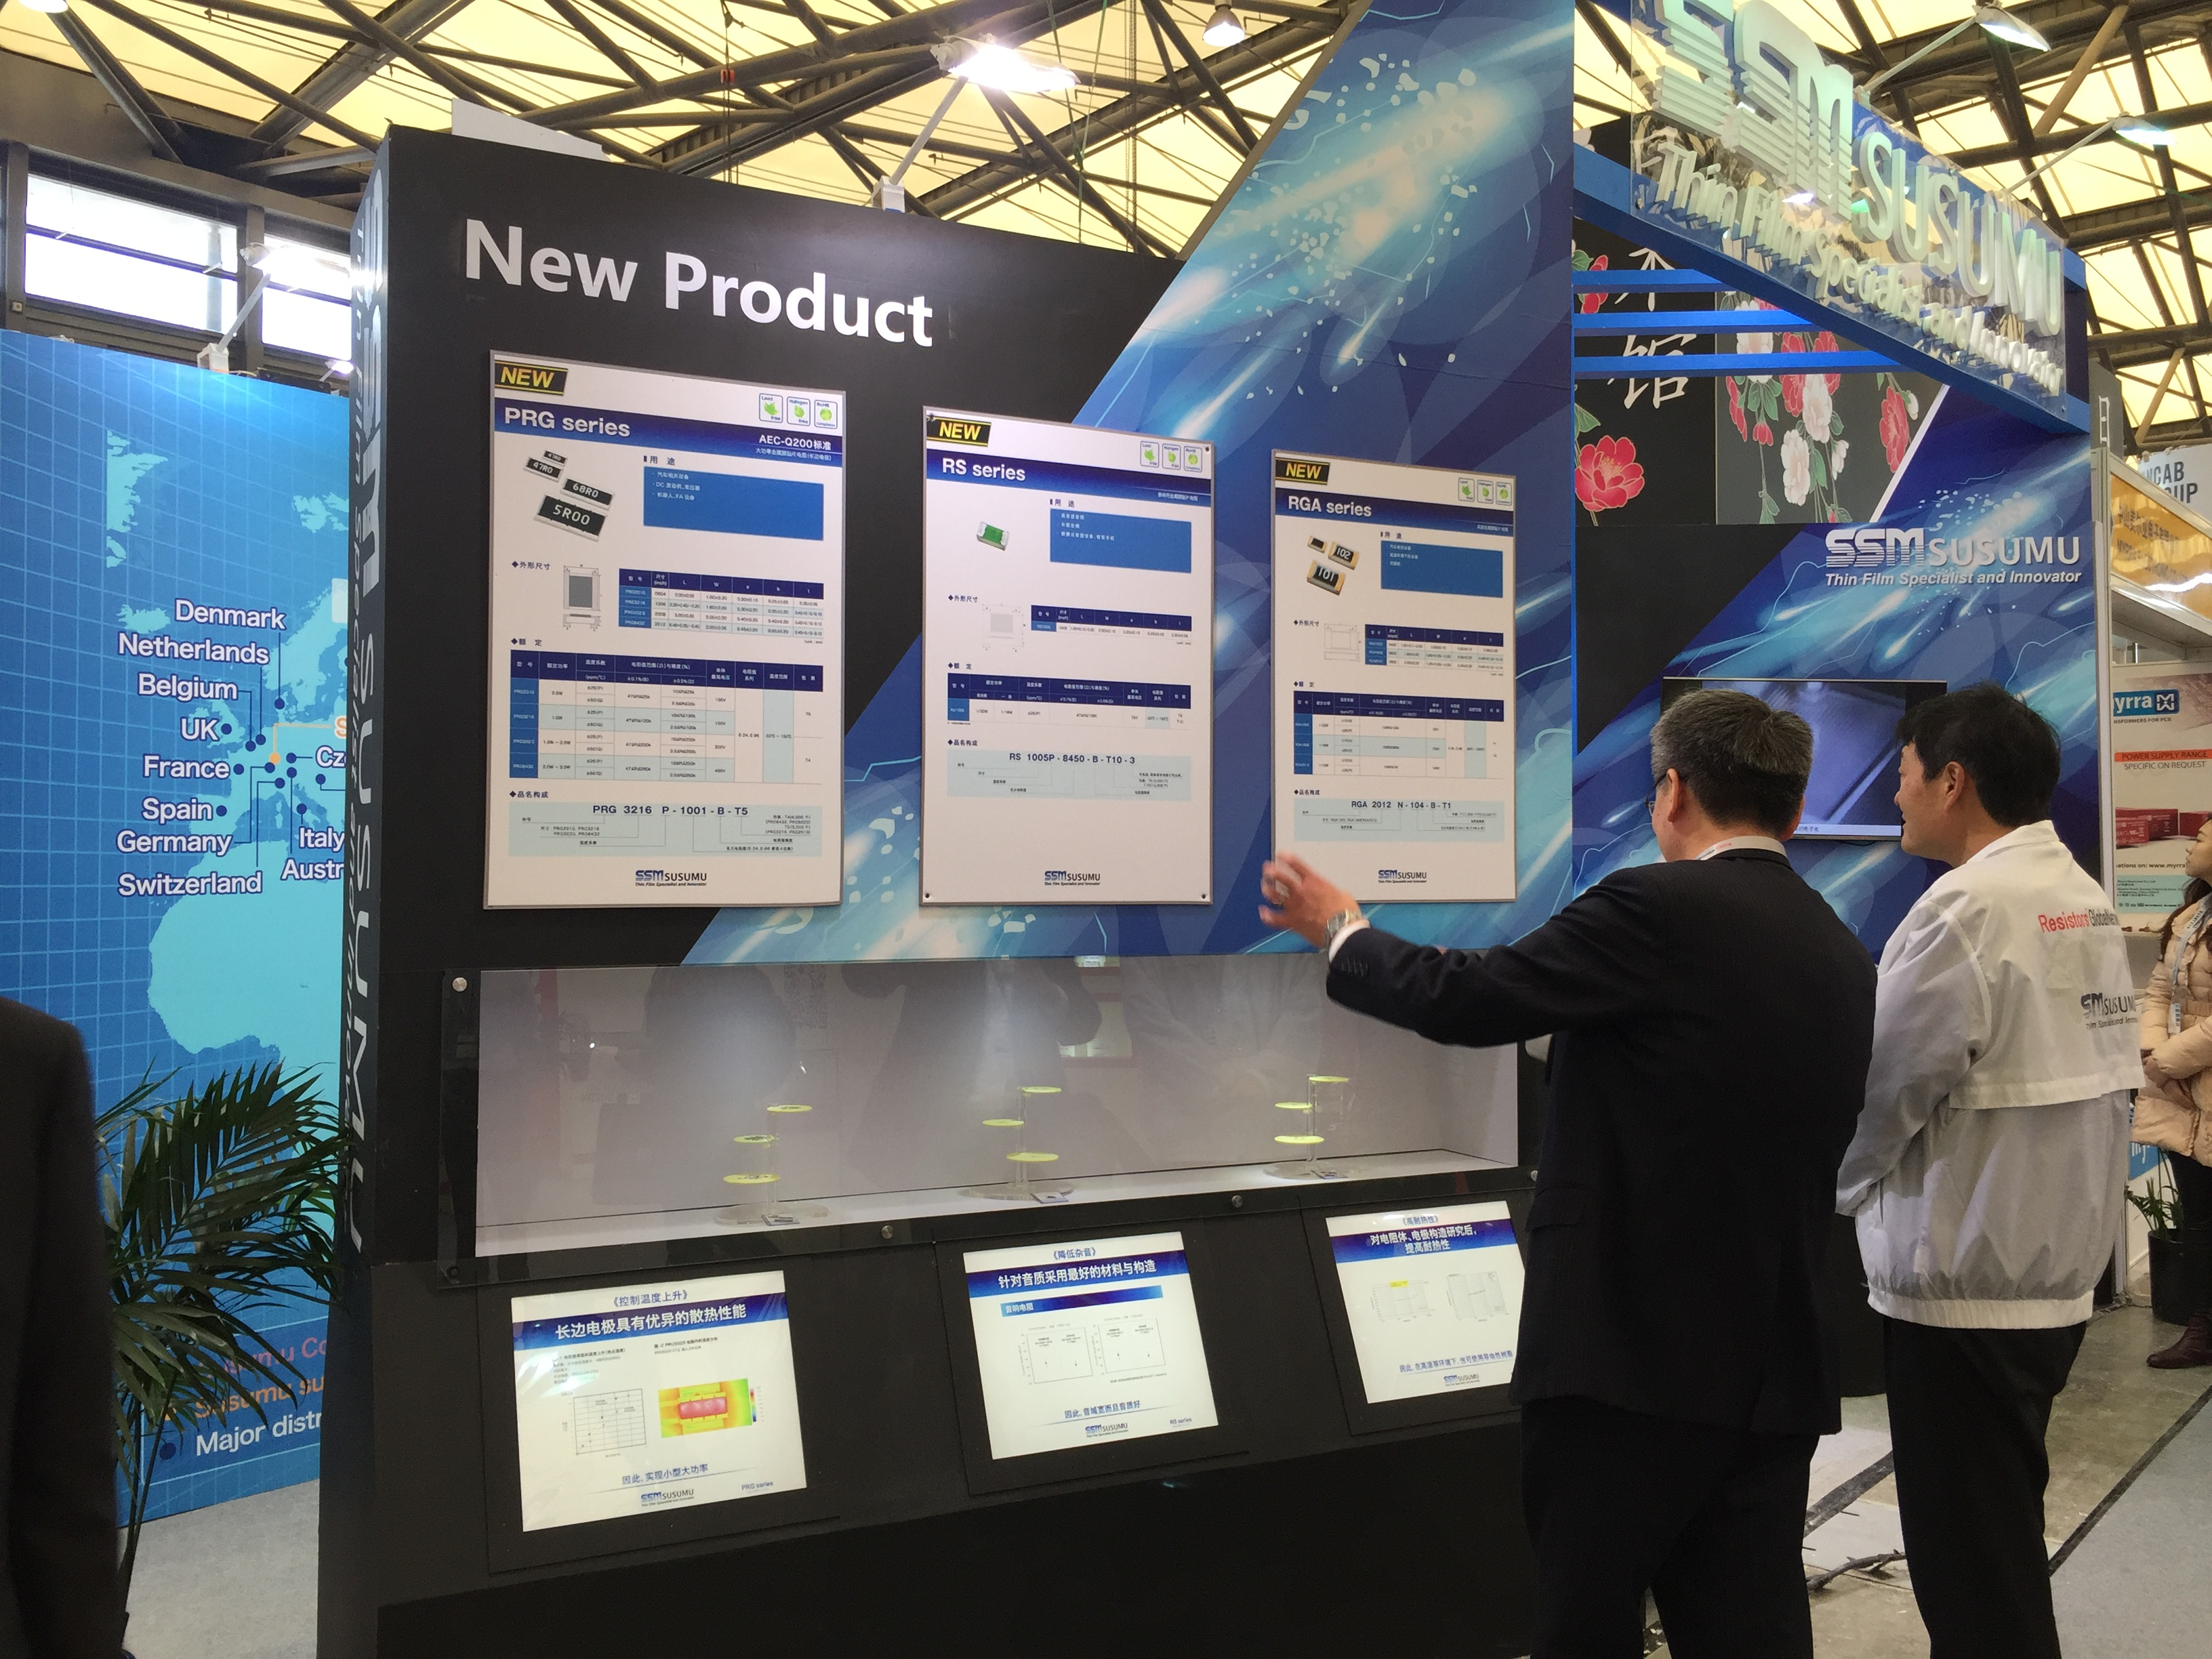 The 15th electronica China 2016 International trade fair for electronic components, systems and applications